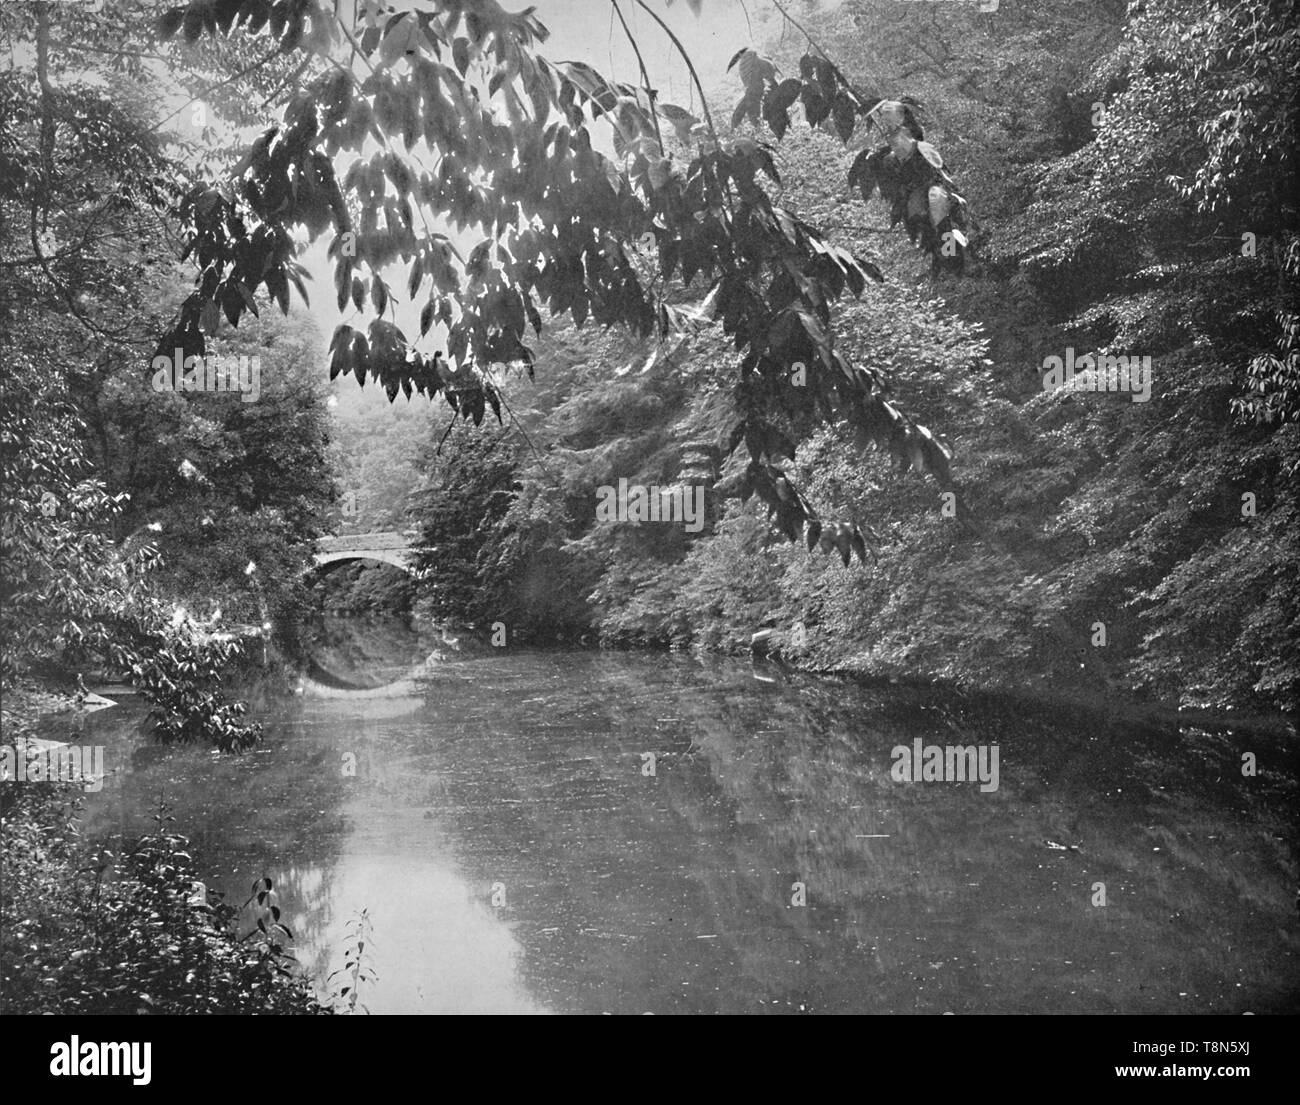 """'On Wissahickon Creek, Fairmount Park, Philadelphia', c1897.  The beauty of this area attracted the attention of Edgar Allan Poe and John Greenleaf Whittier. From """"A Tour Through the New World America"""", by Prof. Geo. R. Cromwell. [C. N. Greig & Co., London, c1897] - Stock Image"""